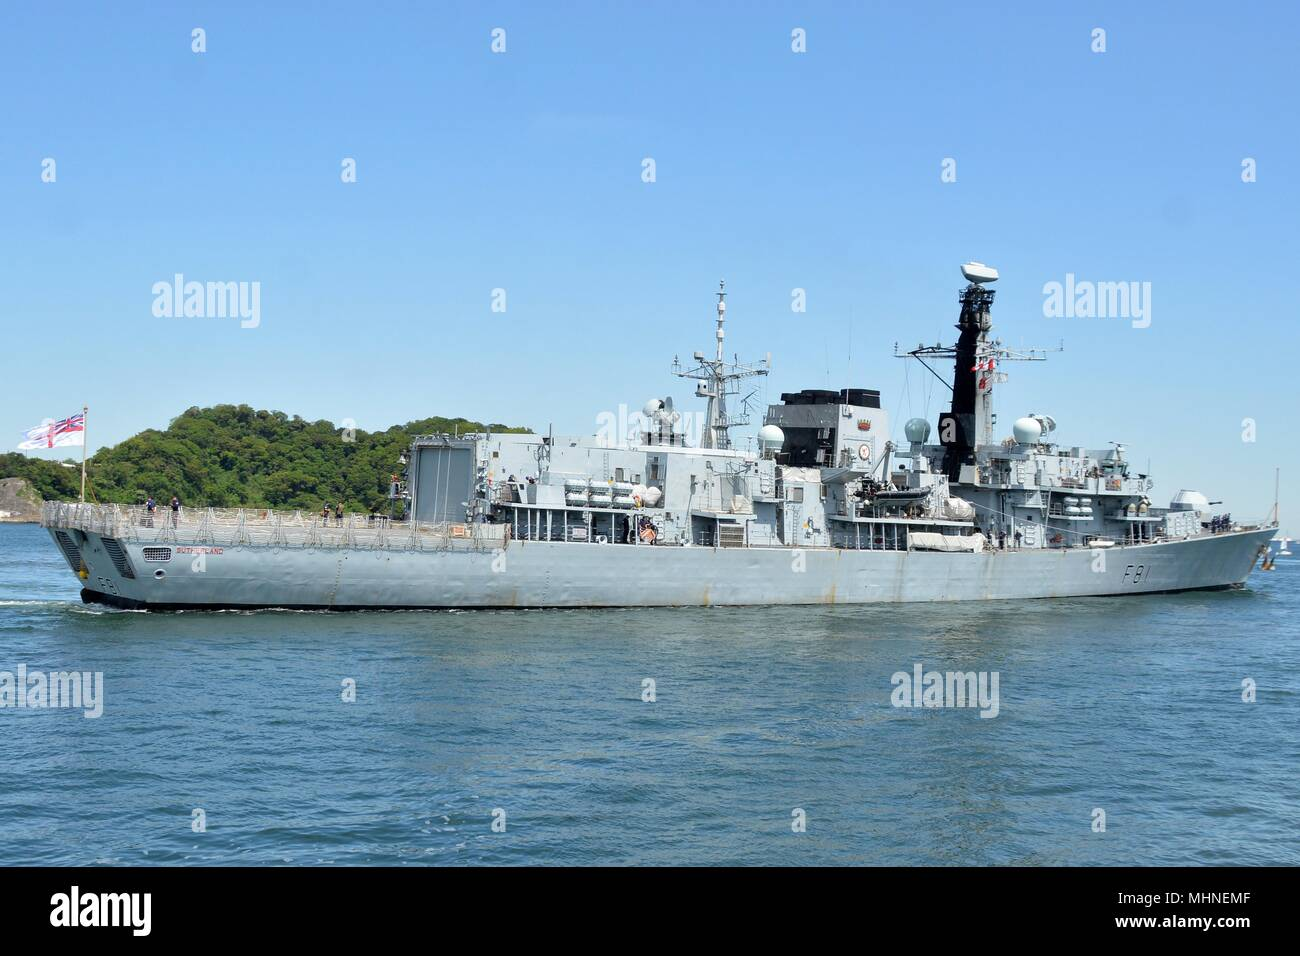 180411-N-XN177-0104 YOKOSUKA, Japan - The British Royal Navy Type 23 frigate HMS Sutherland (F 81) departs U.S. Fleet Activities (FLEACT) Yokosuka after a scheduled port visit, April 26, 2018. FLEACT Yokosuka provides, maintains, and operates base facilities and services in support of 7th Fleet's forward-deployed naval forces, 71 tenant commands, and 27, 000 military and civilian personnel. (U.S. Navy photo by Mass Communication Specialist 1st Class Peter Burghart/Released). () - Stock Image